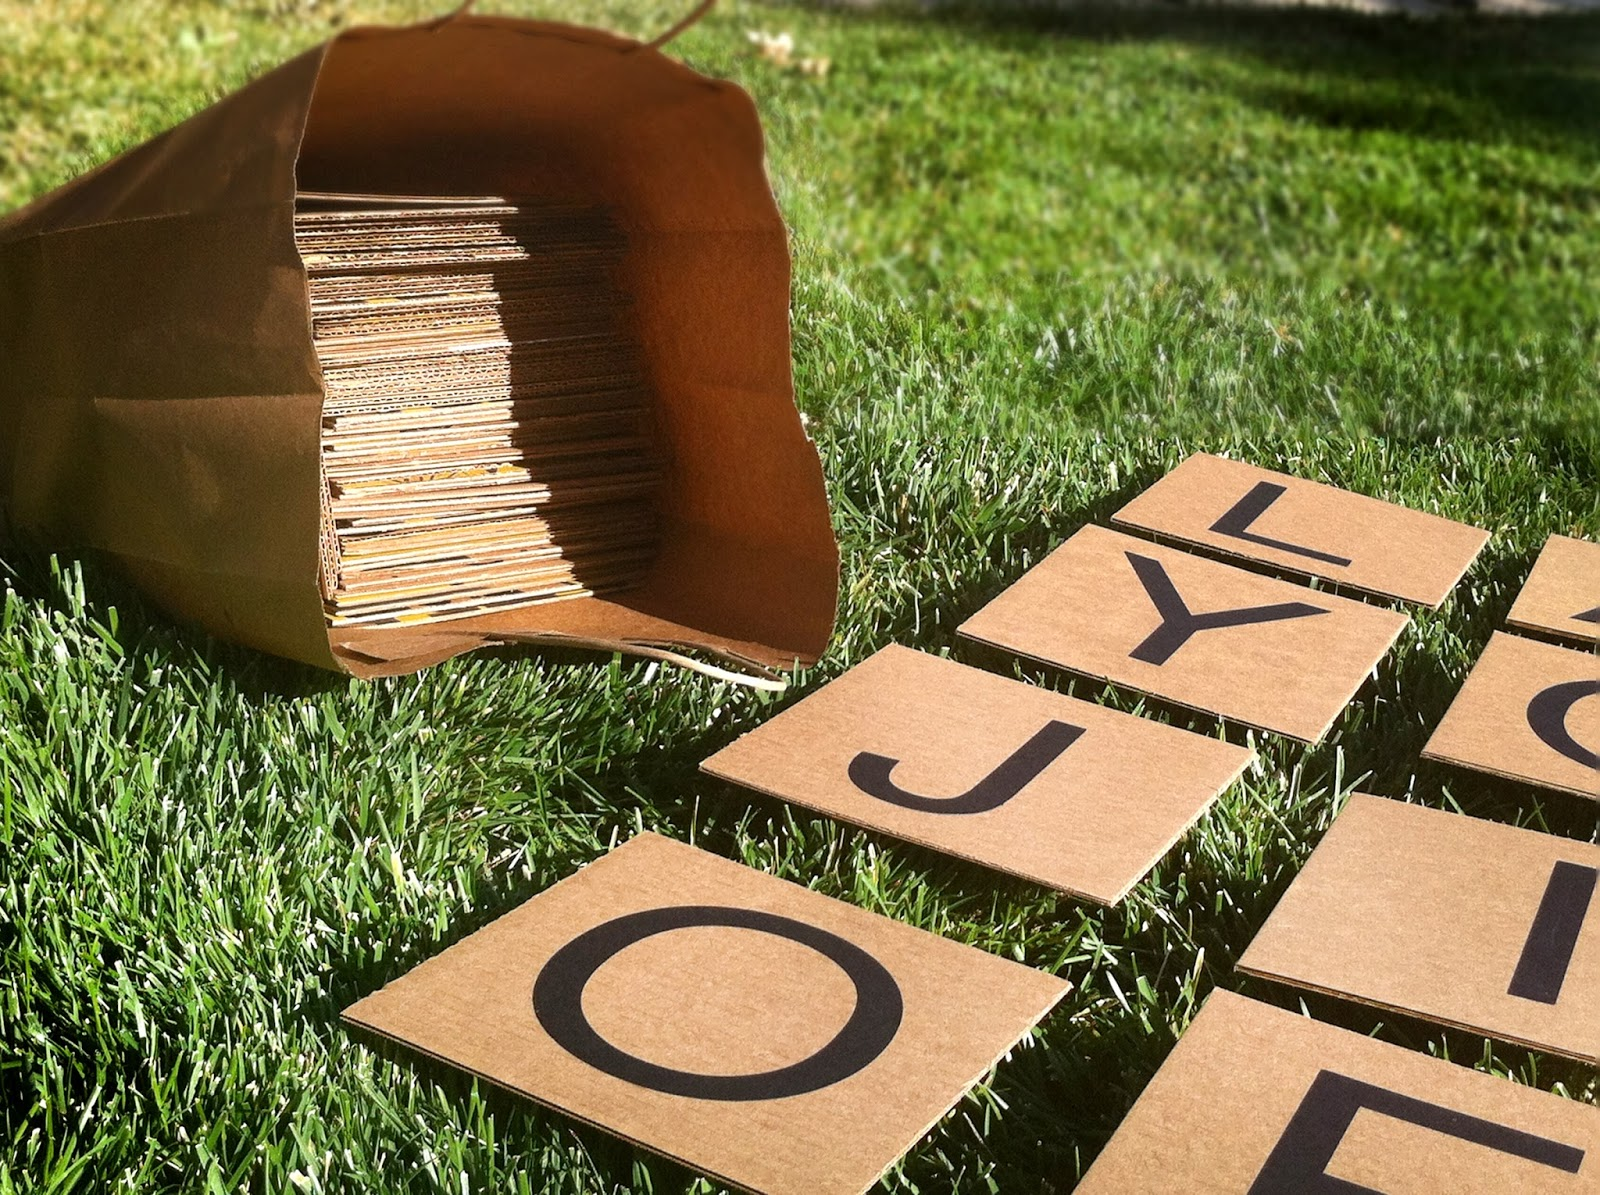 From The Carriage House: Yard Scrabble & Boggle